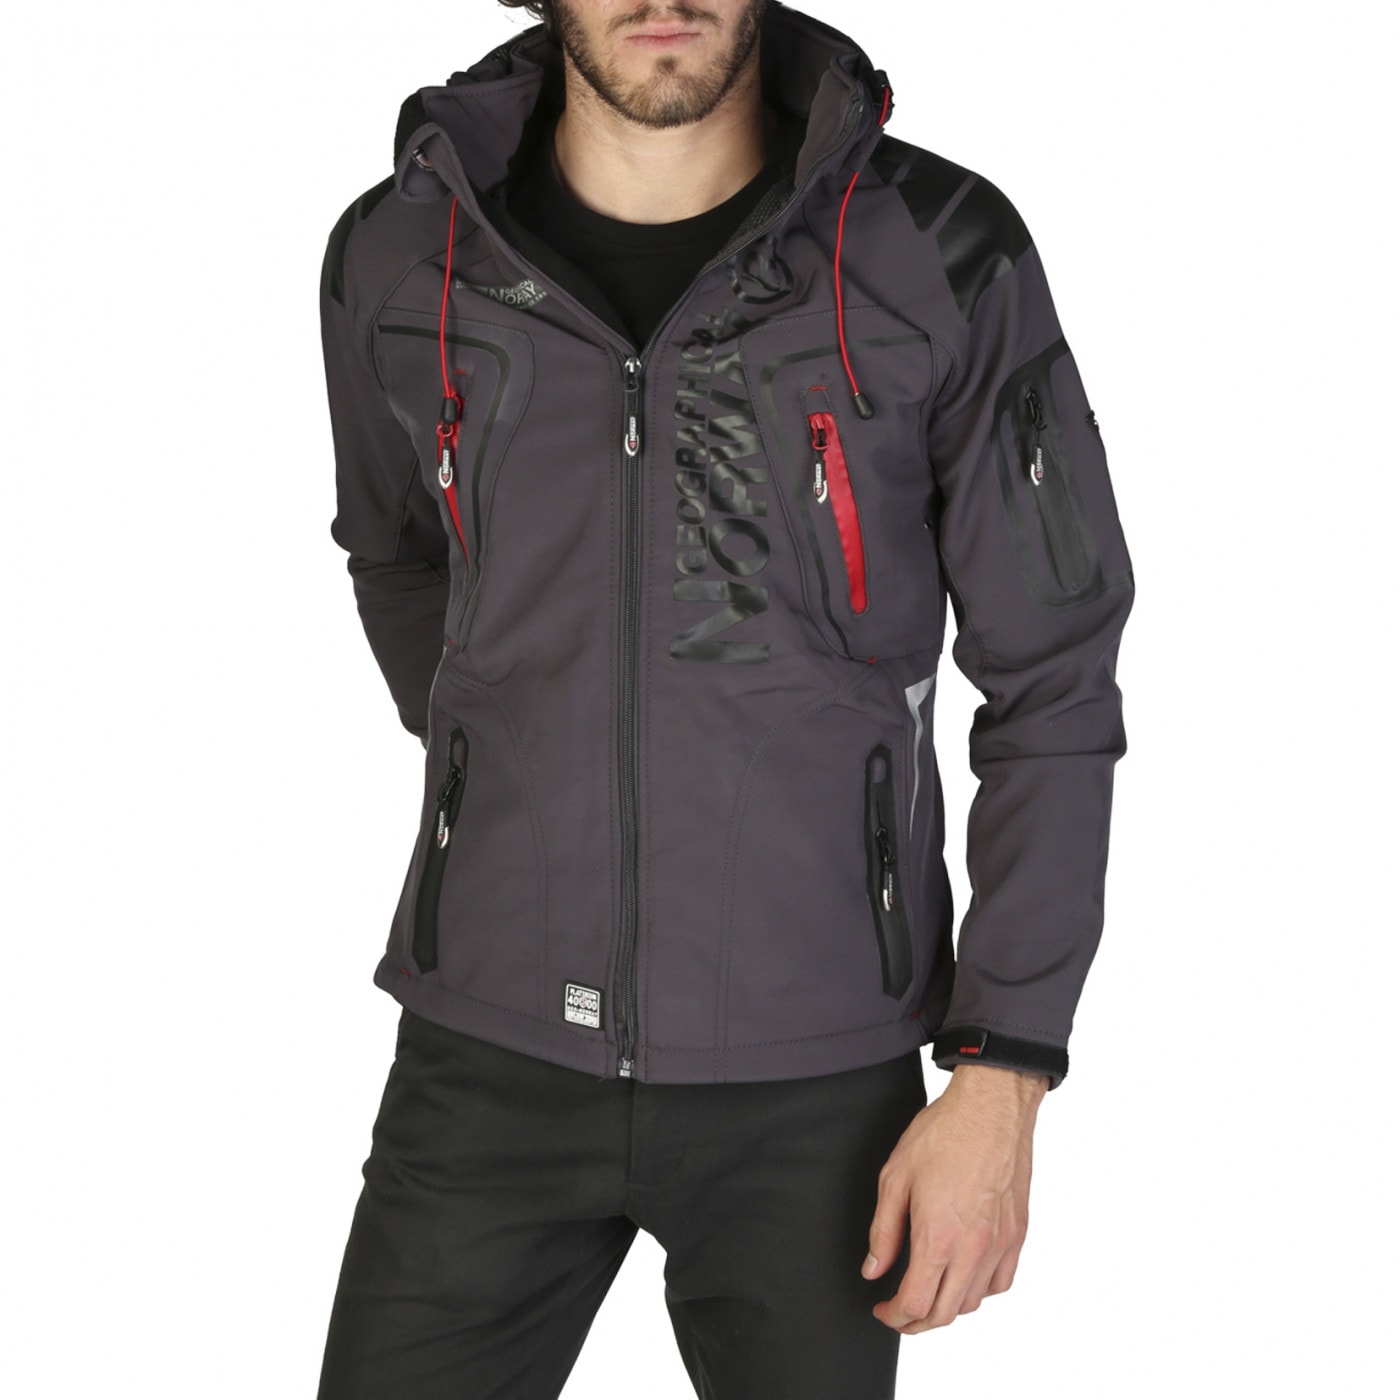 Men's jacket Geographical Norway Techno man